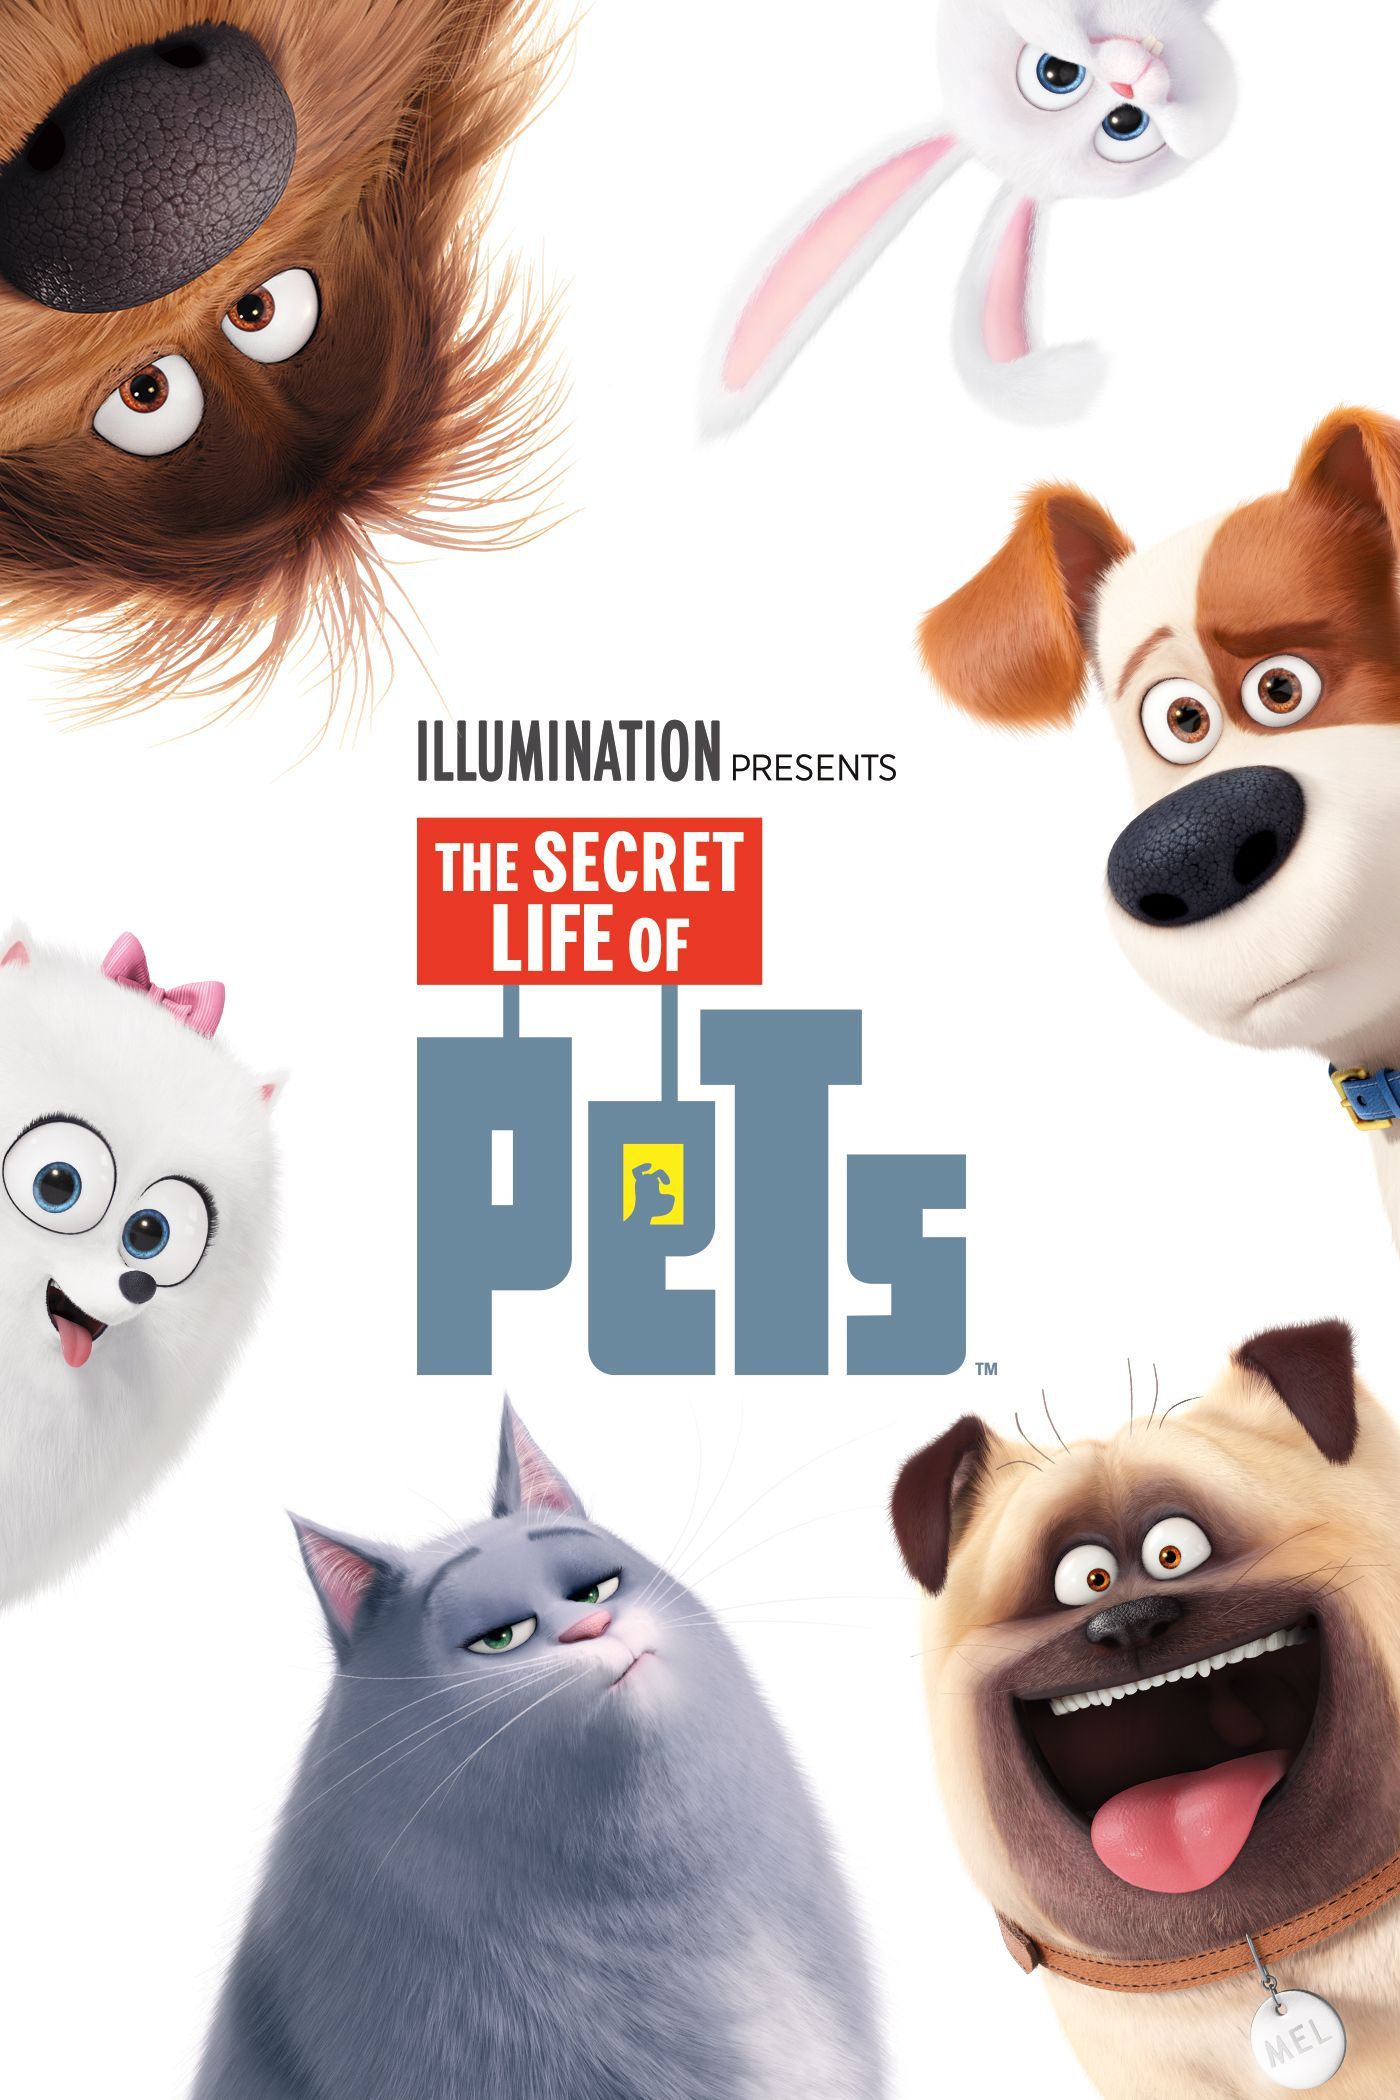 Secret Life Of Pets The Hd Find Out What Your Pets Do When You Re Not At Home In This Animated Comedy Featuring Pets Movie Secret Life Of Pets Secret Life